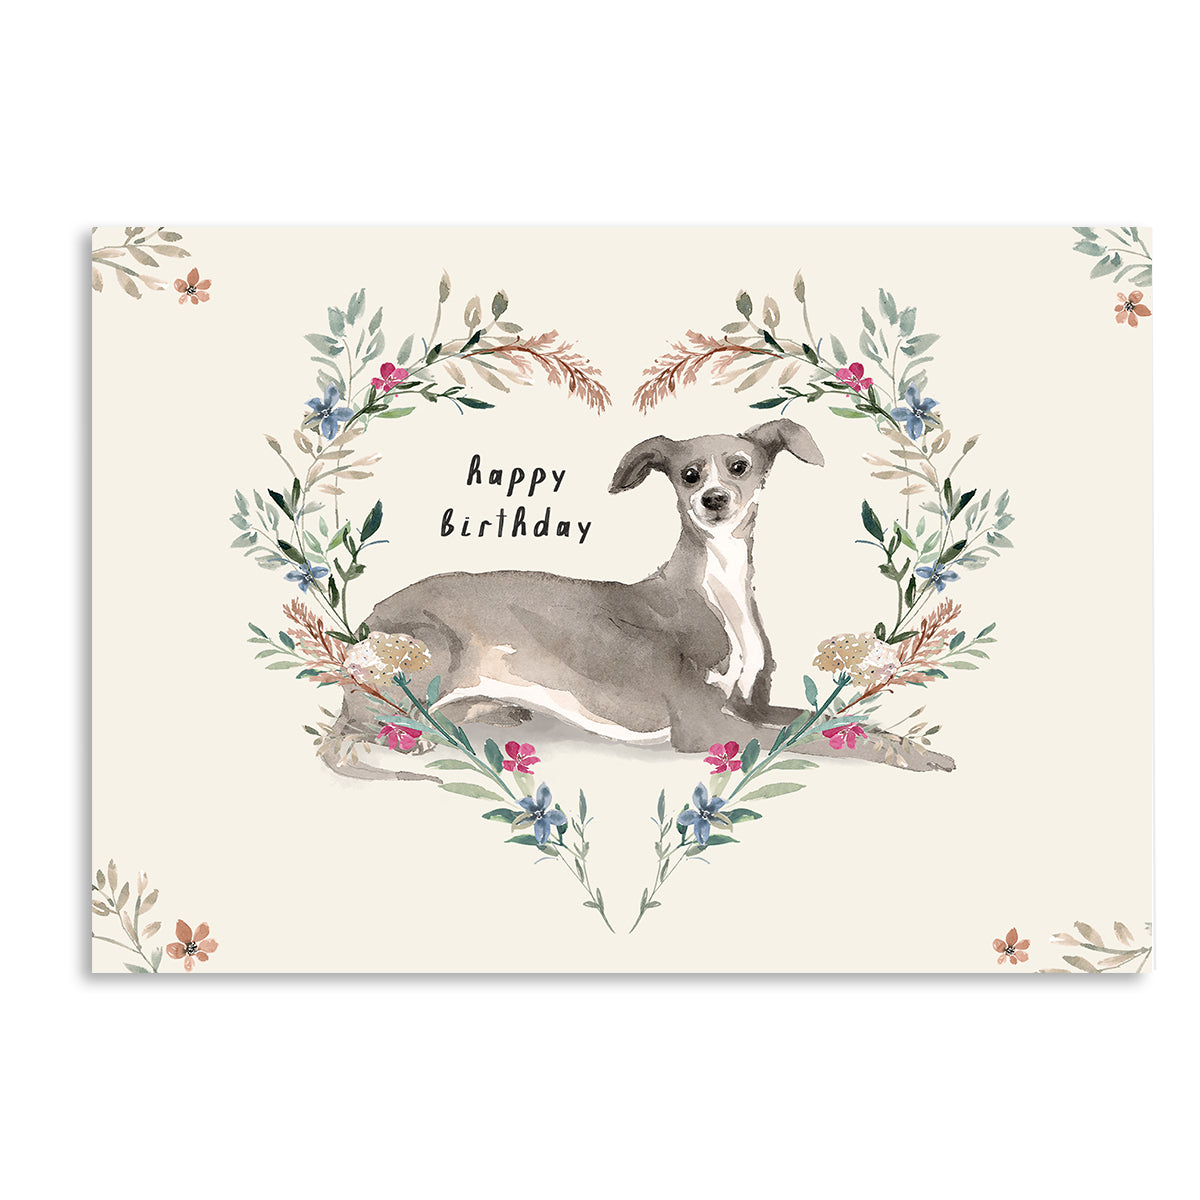 Happy Birthday Greyhound Card-Greeting Cards-Mode Prints